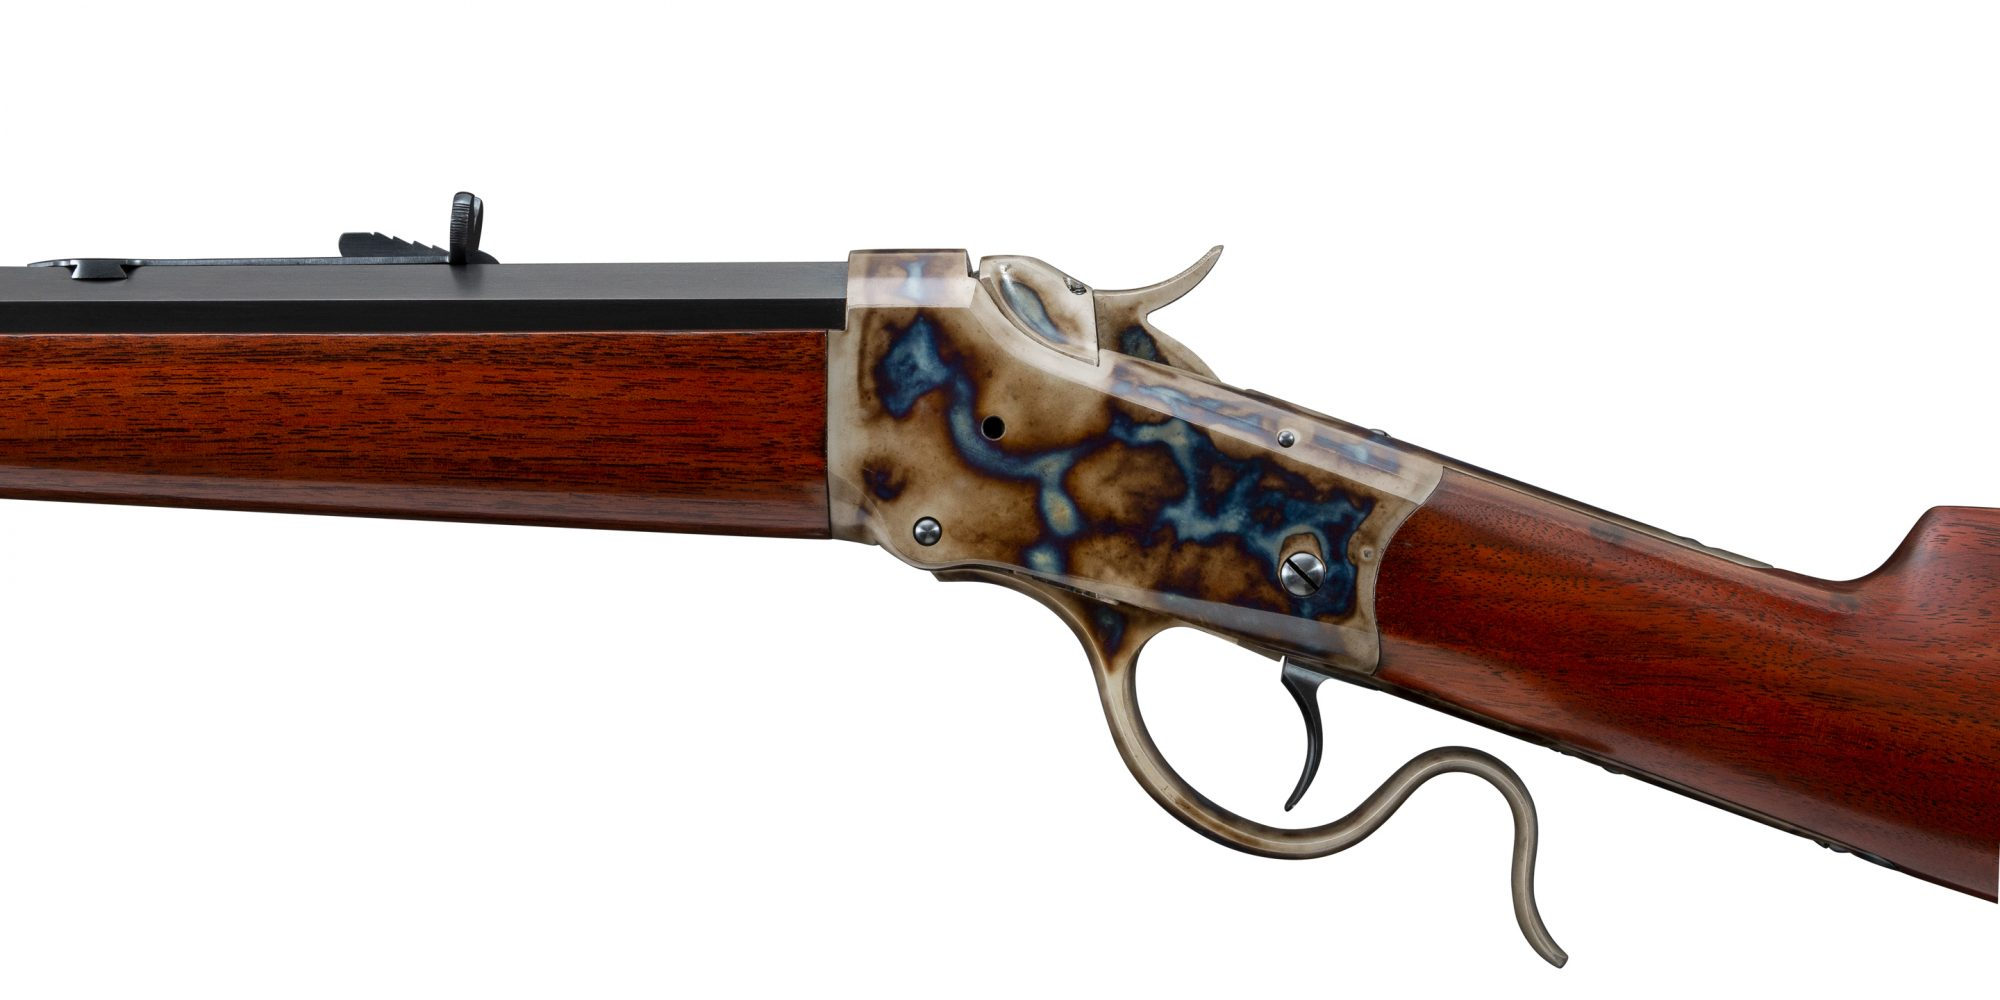 Photo of a Winchester Model 1885 single shot rifle, after restoration by Turnbull Restoration Co. of Bloomfield, NY